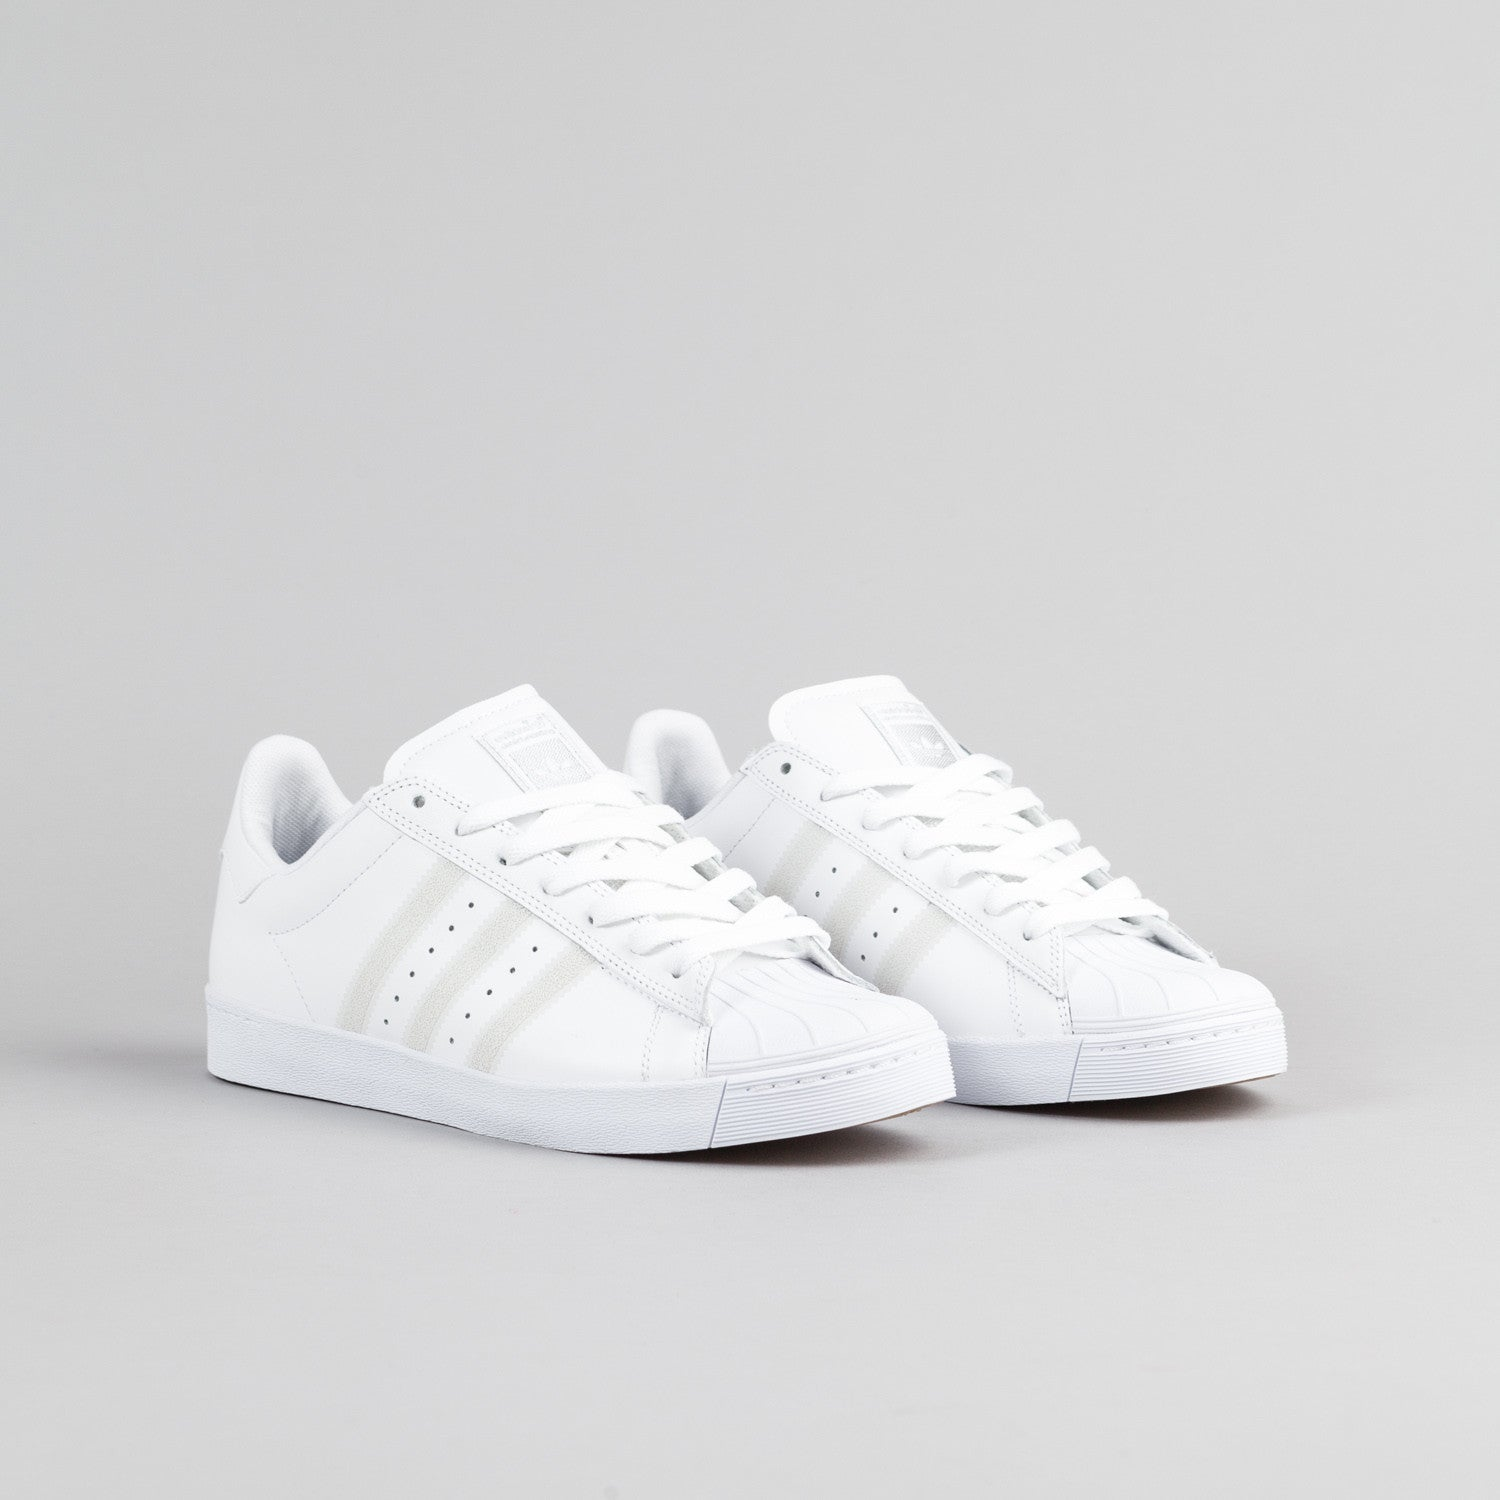 Cheap Adidas Superstar Cheap Adidas Superstar Shoes Online Hype DC